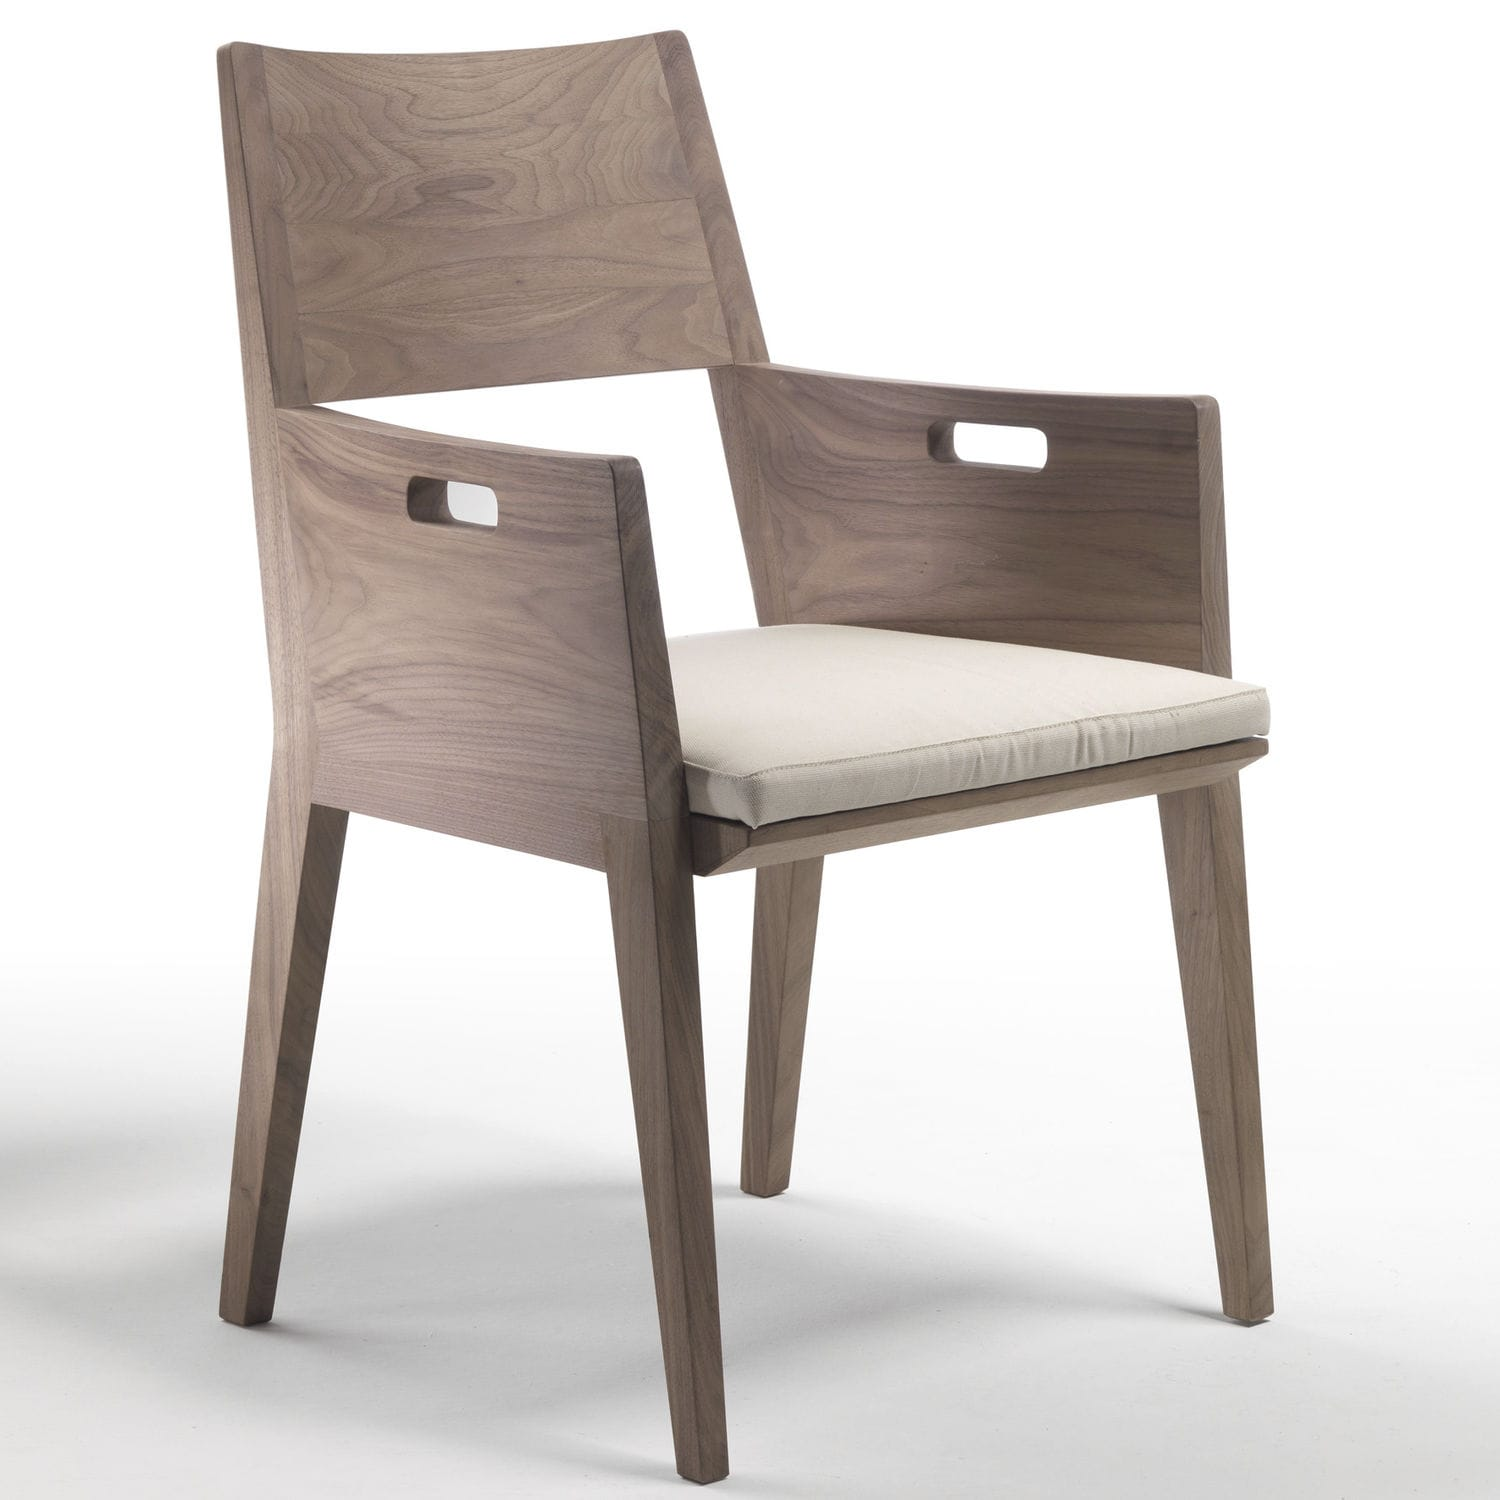 Chaise tissu salle a manger having the best dining chairs for Chaise tissu salle a manger